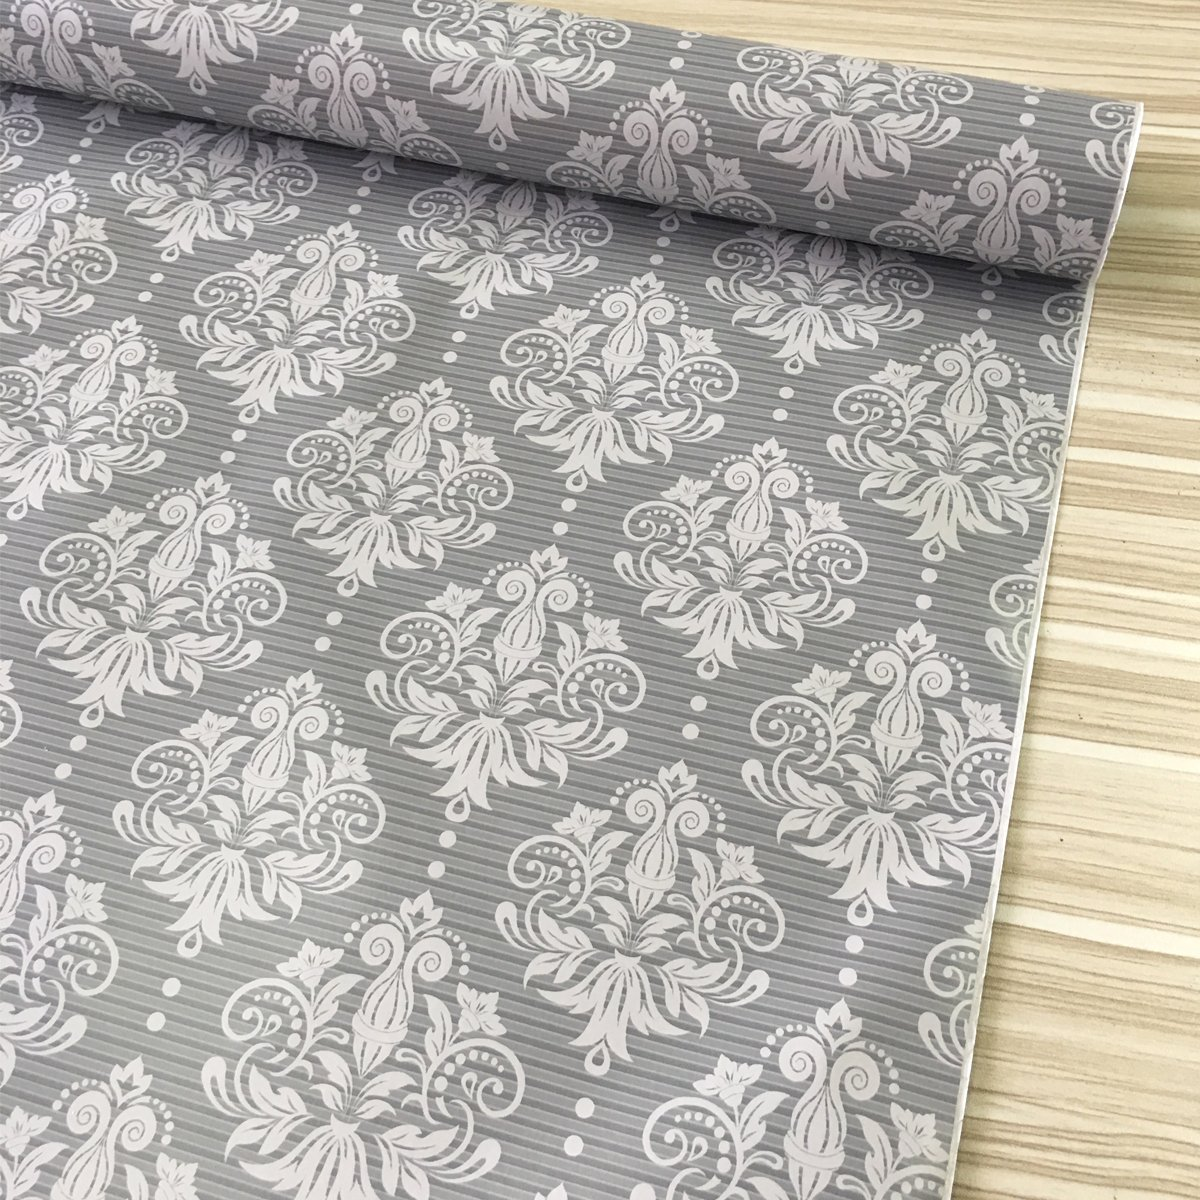 SimpleLife4U LoveFaye Grey and White Contact Paper for Cabinets Damask Shelf Drawer Liner Roll Easy Apply 17.7 Inch by 13 Feet 402141